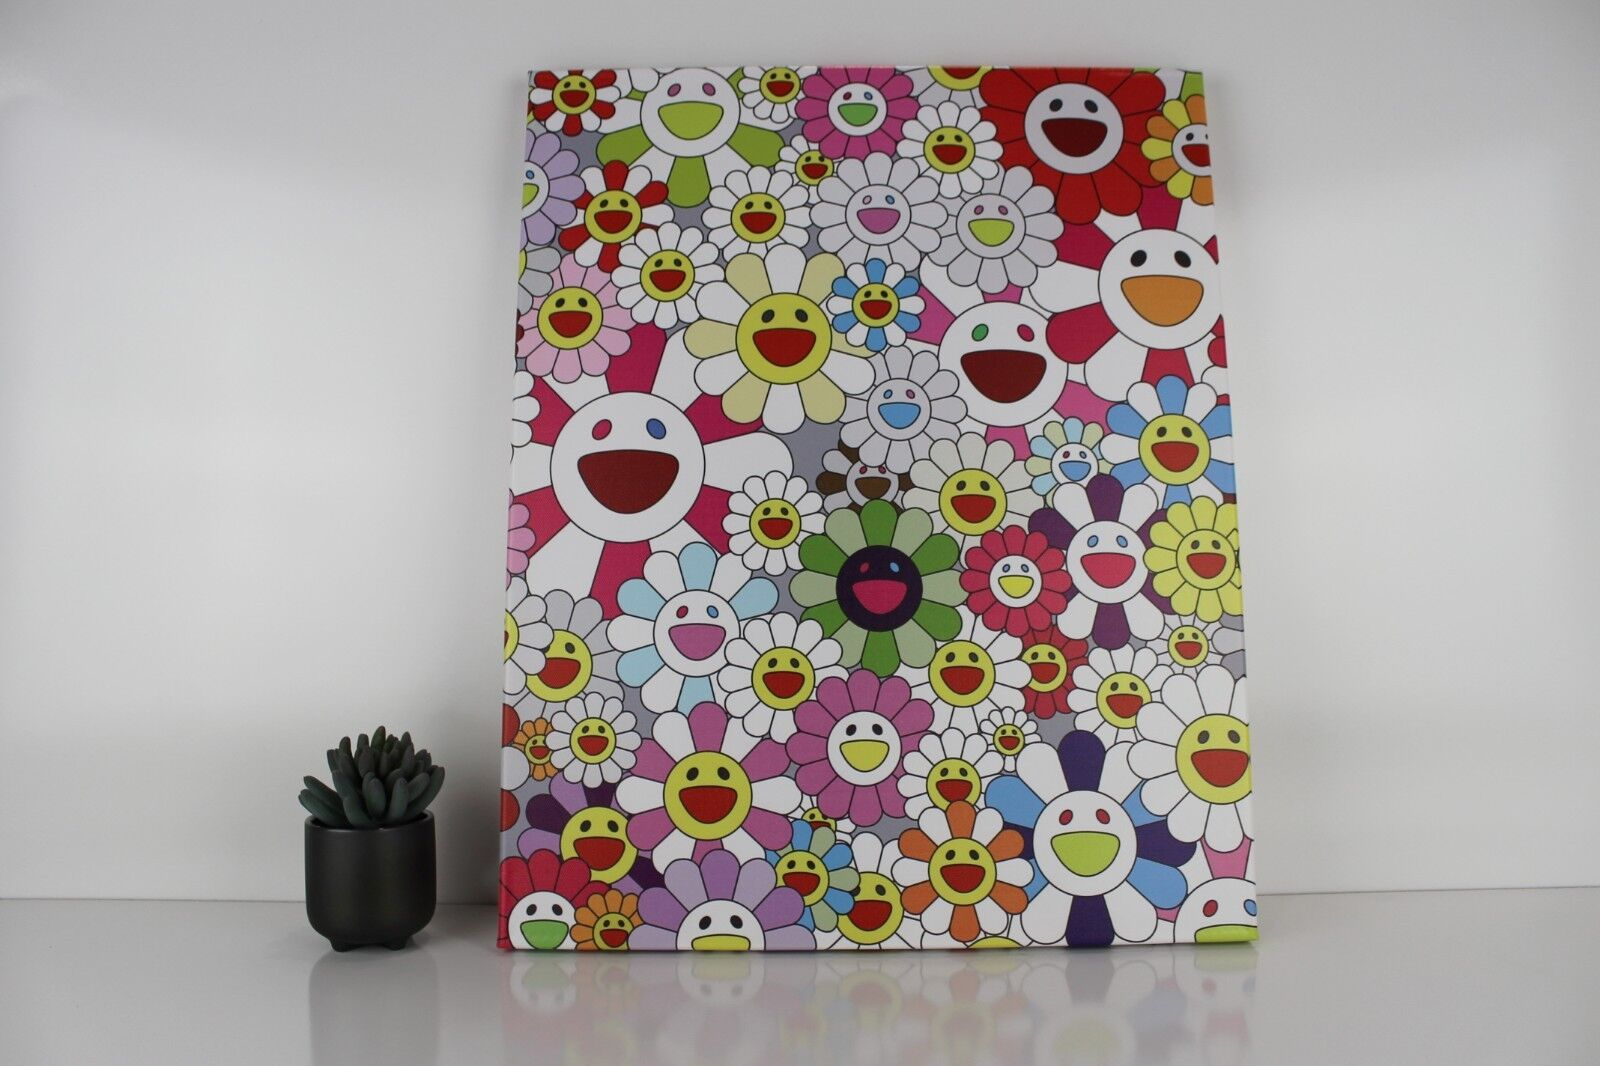 Gallery Art Canvas- Takashi Murakami Flowers in Heaven Smiley Faces Complexcon